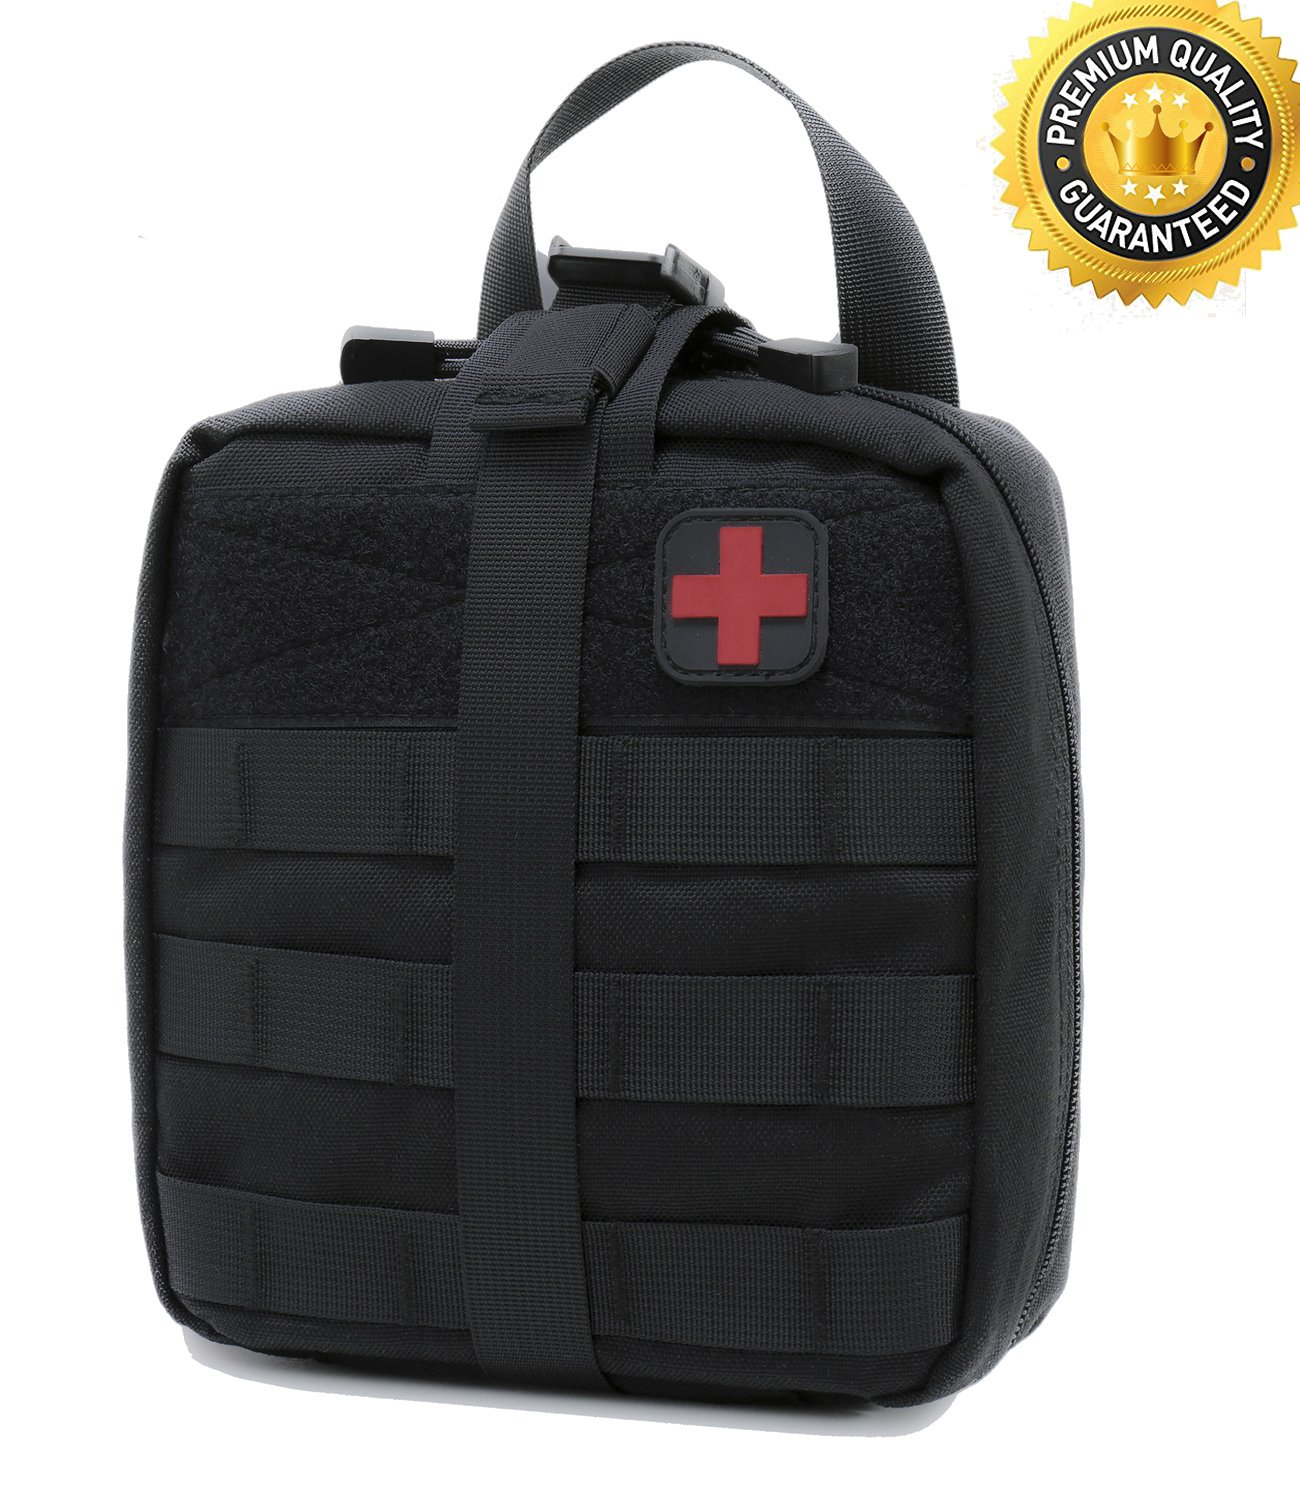 Carlebben Tactical MOLLE Rip Away EMT Medical First Aid IFAK Utility Pouch 1000D Nylon (Black)